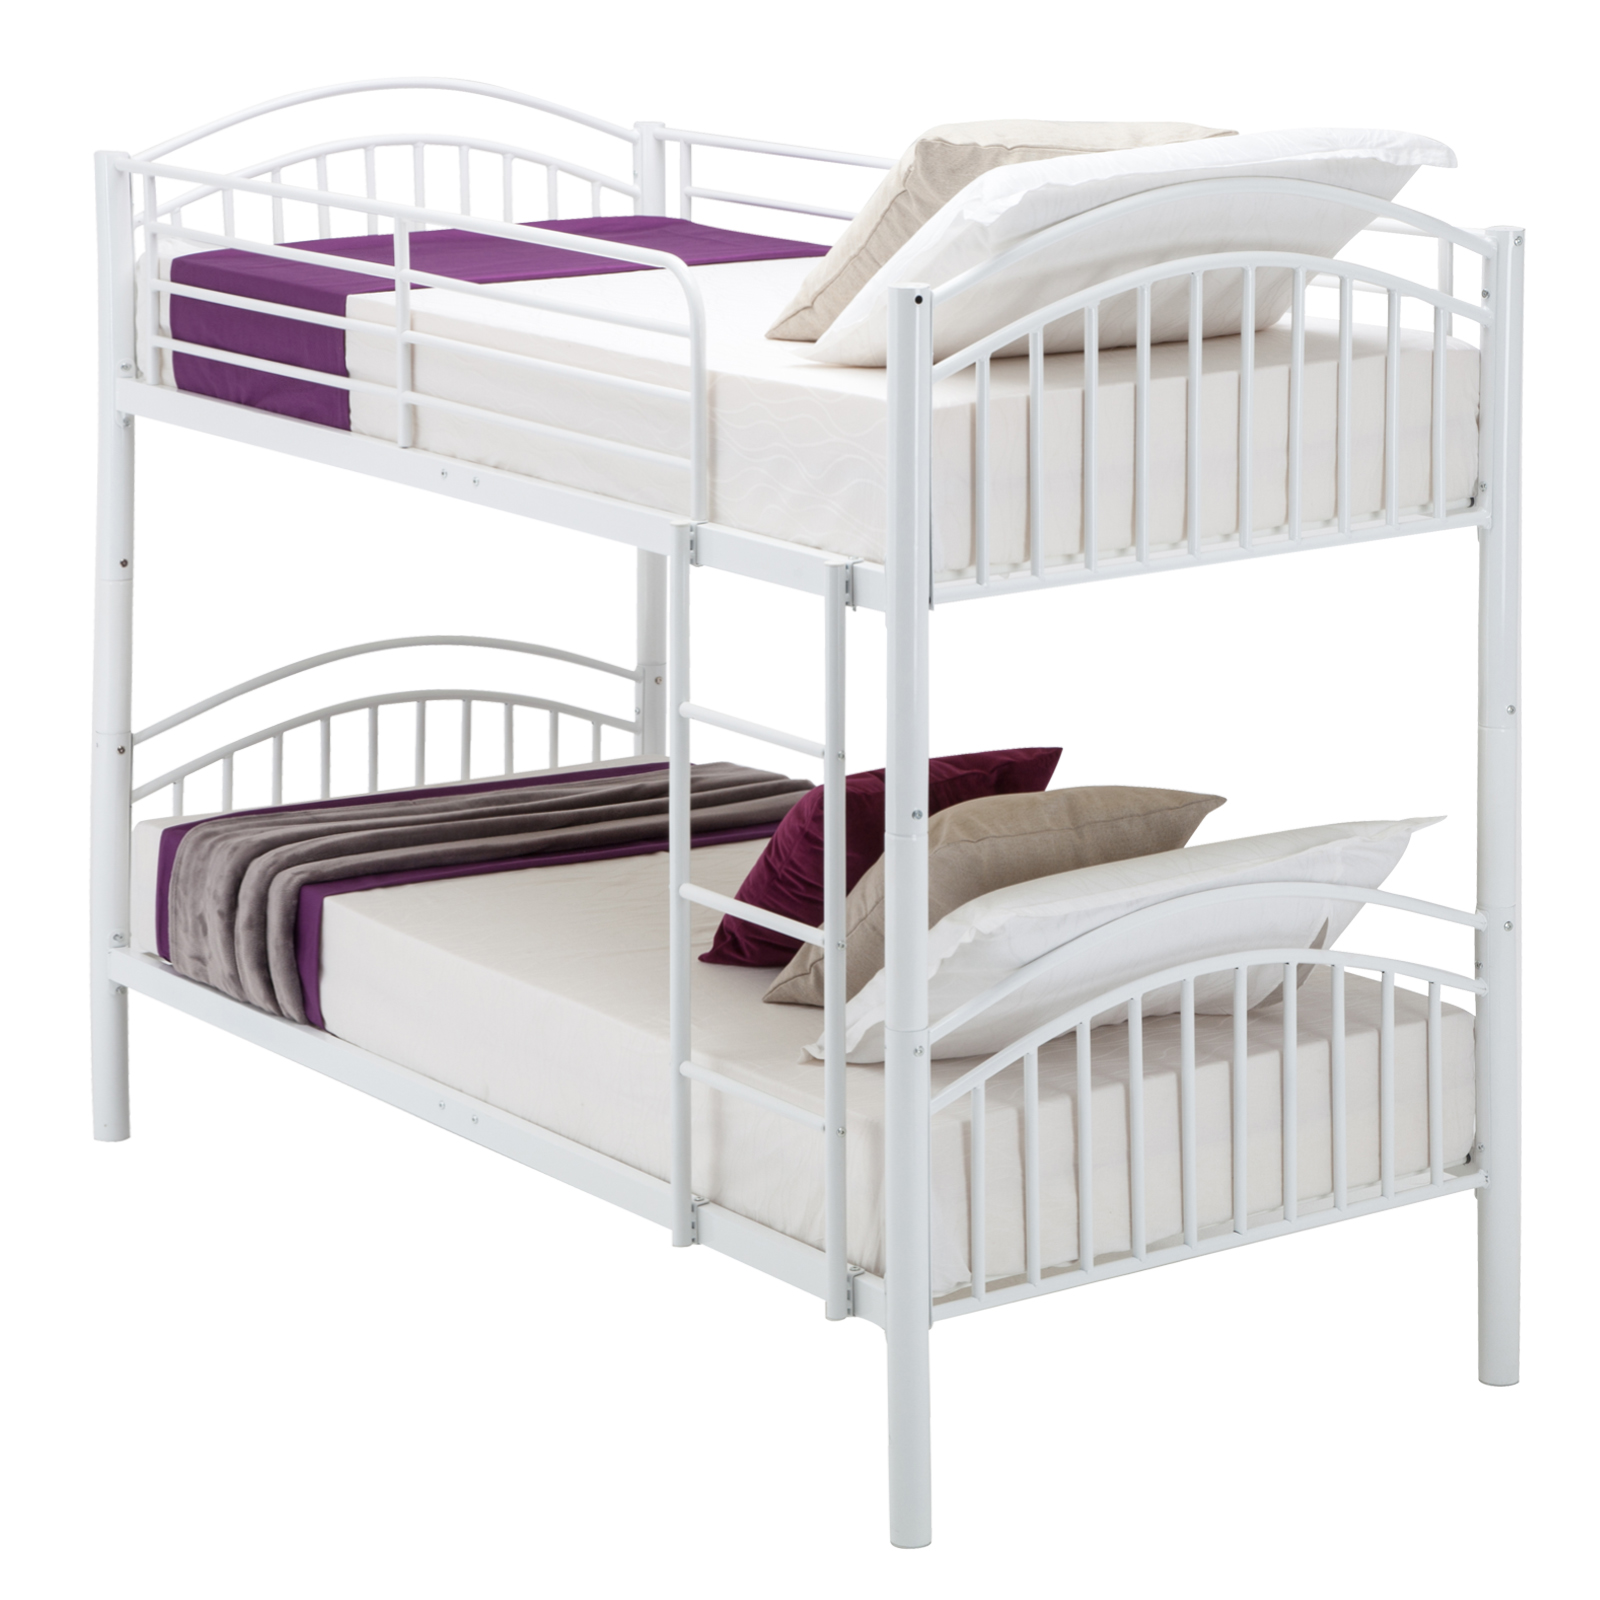 Modern 3ft single white metal bunk bed frame 2 person for for Single bunk bed